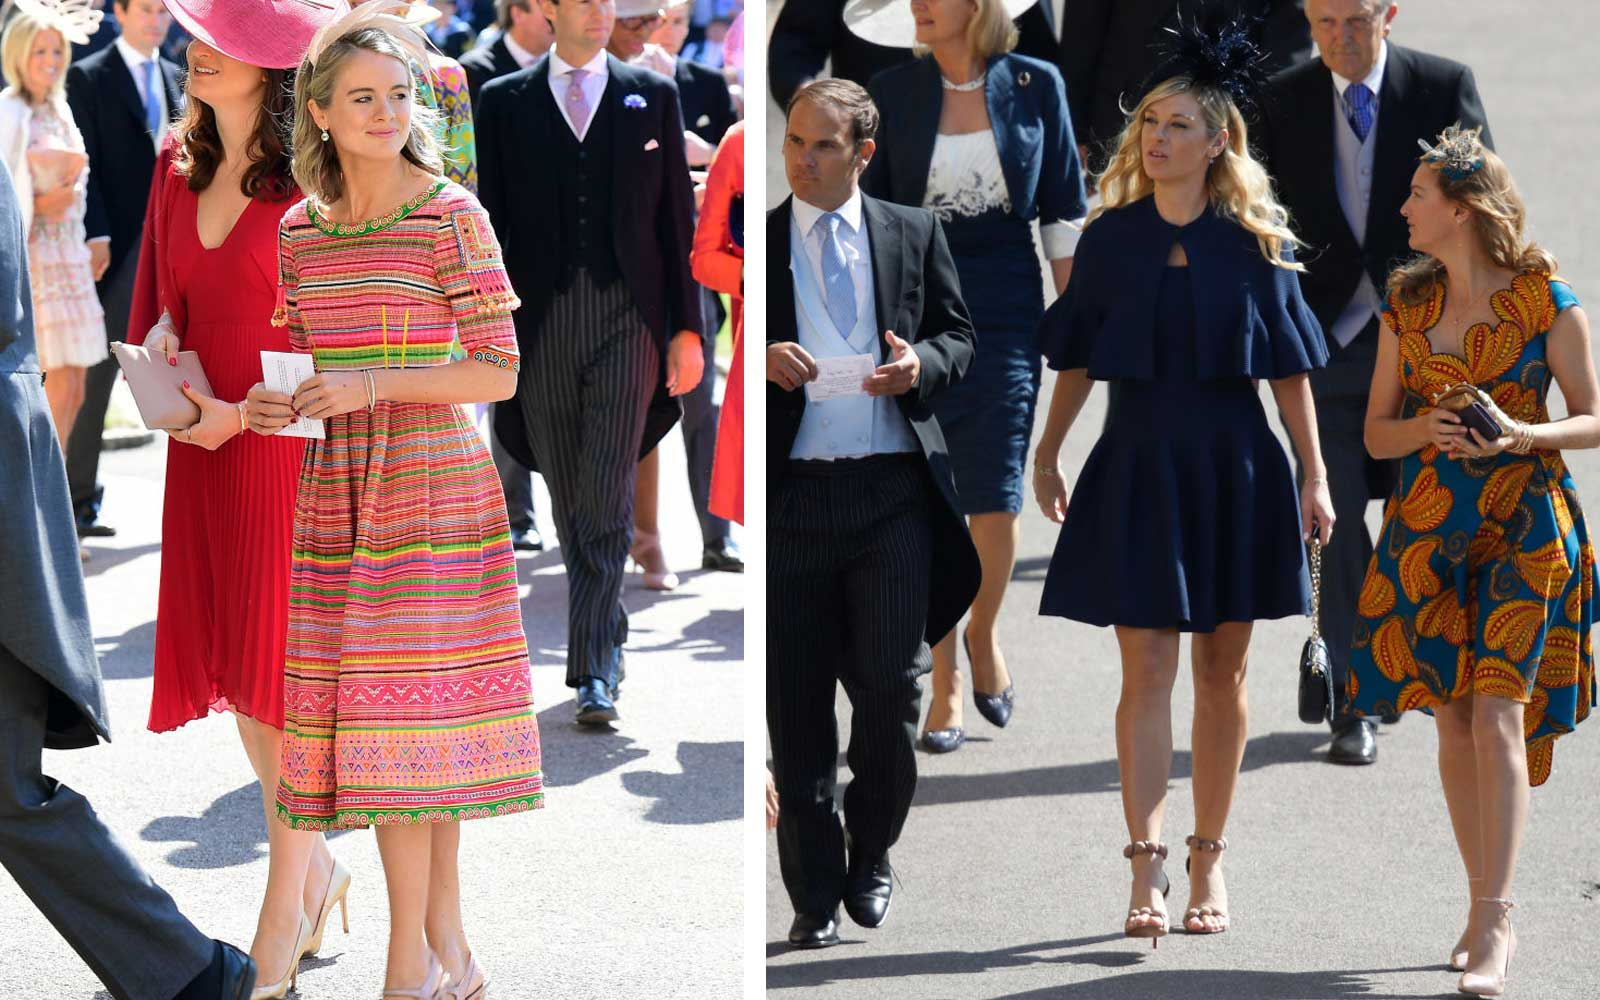 Prince Harry's ex girlfriends arrive to royal wedding